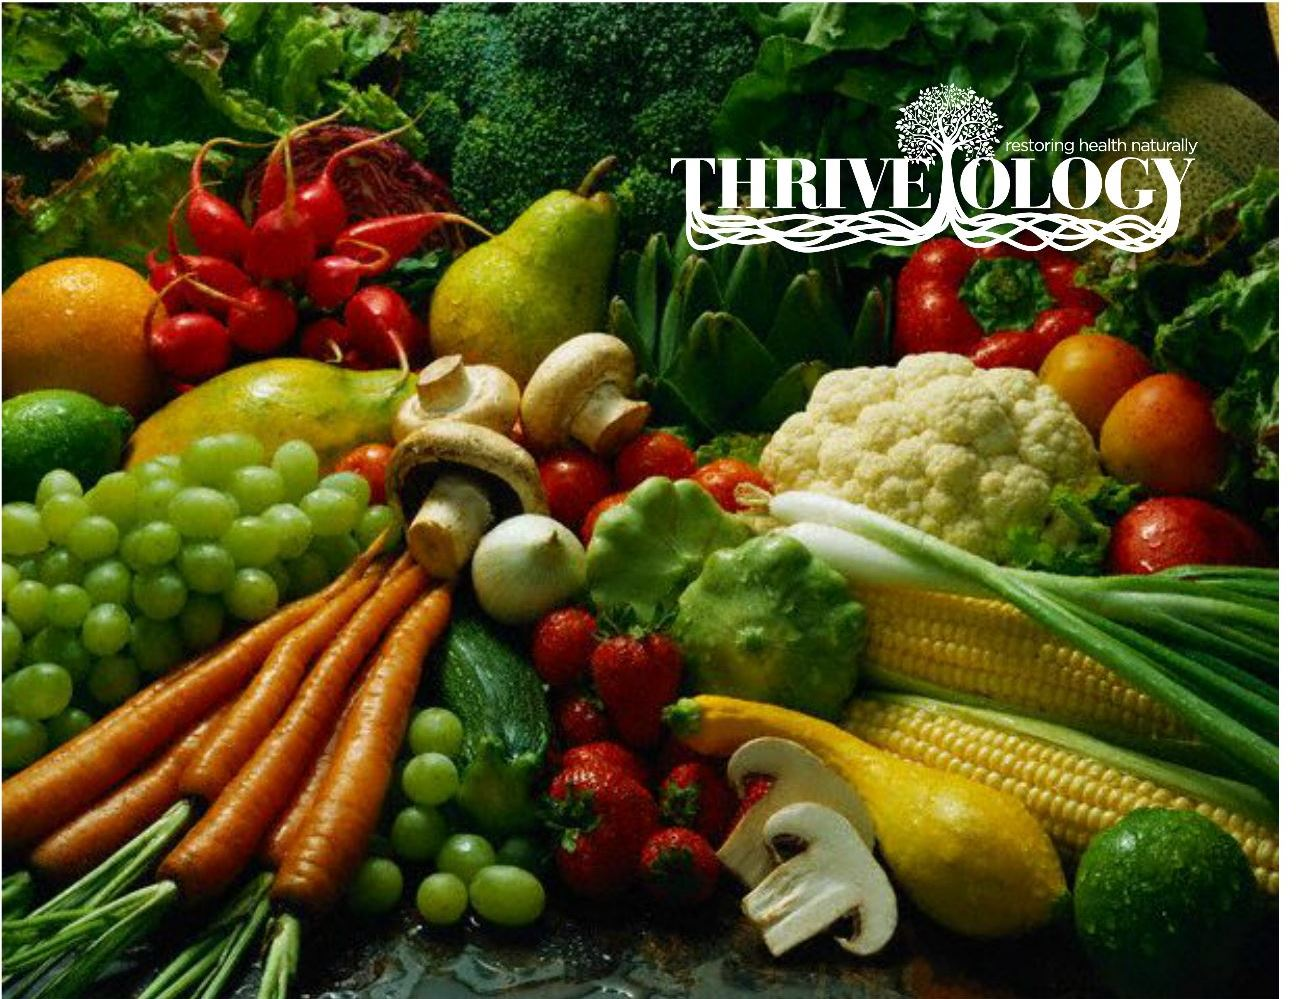 fruits and vegetables, thriveology